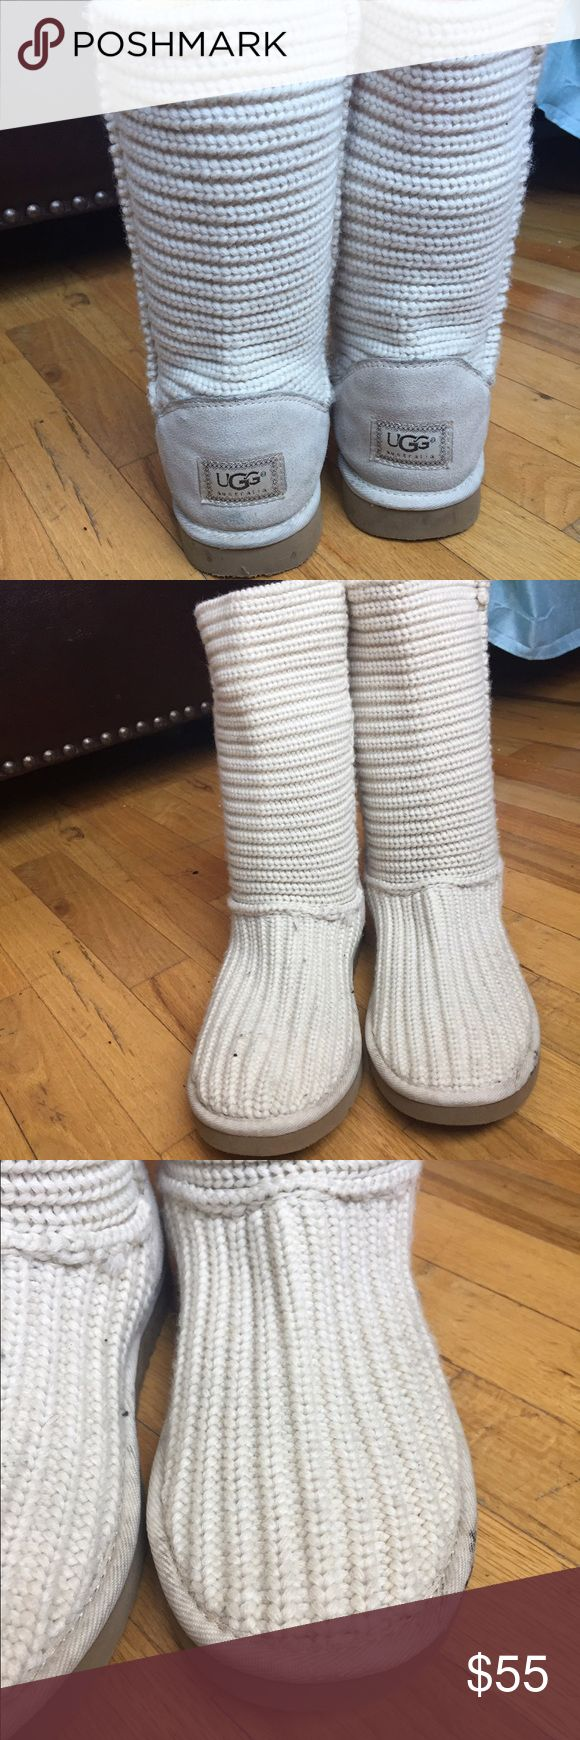 Women's uggs size 10 Women's uggs size 10 in white Knit . Calf length are still in good condition UGG Shoes Winter & Rain Boots